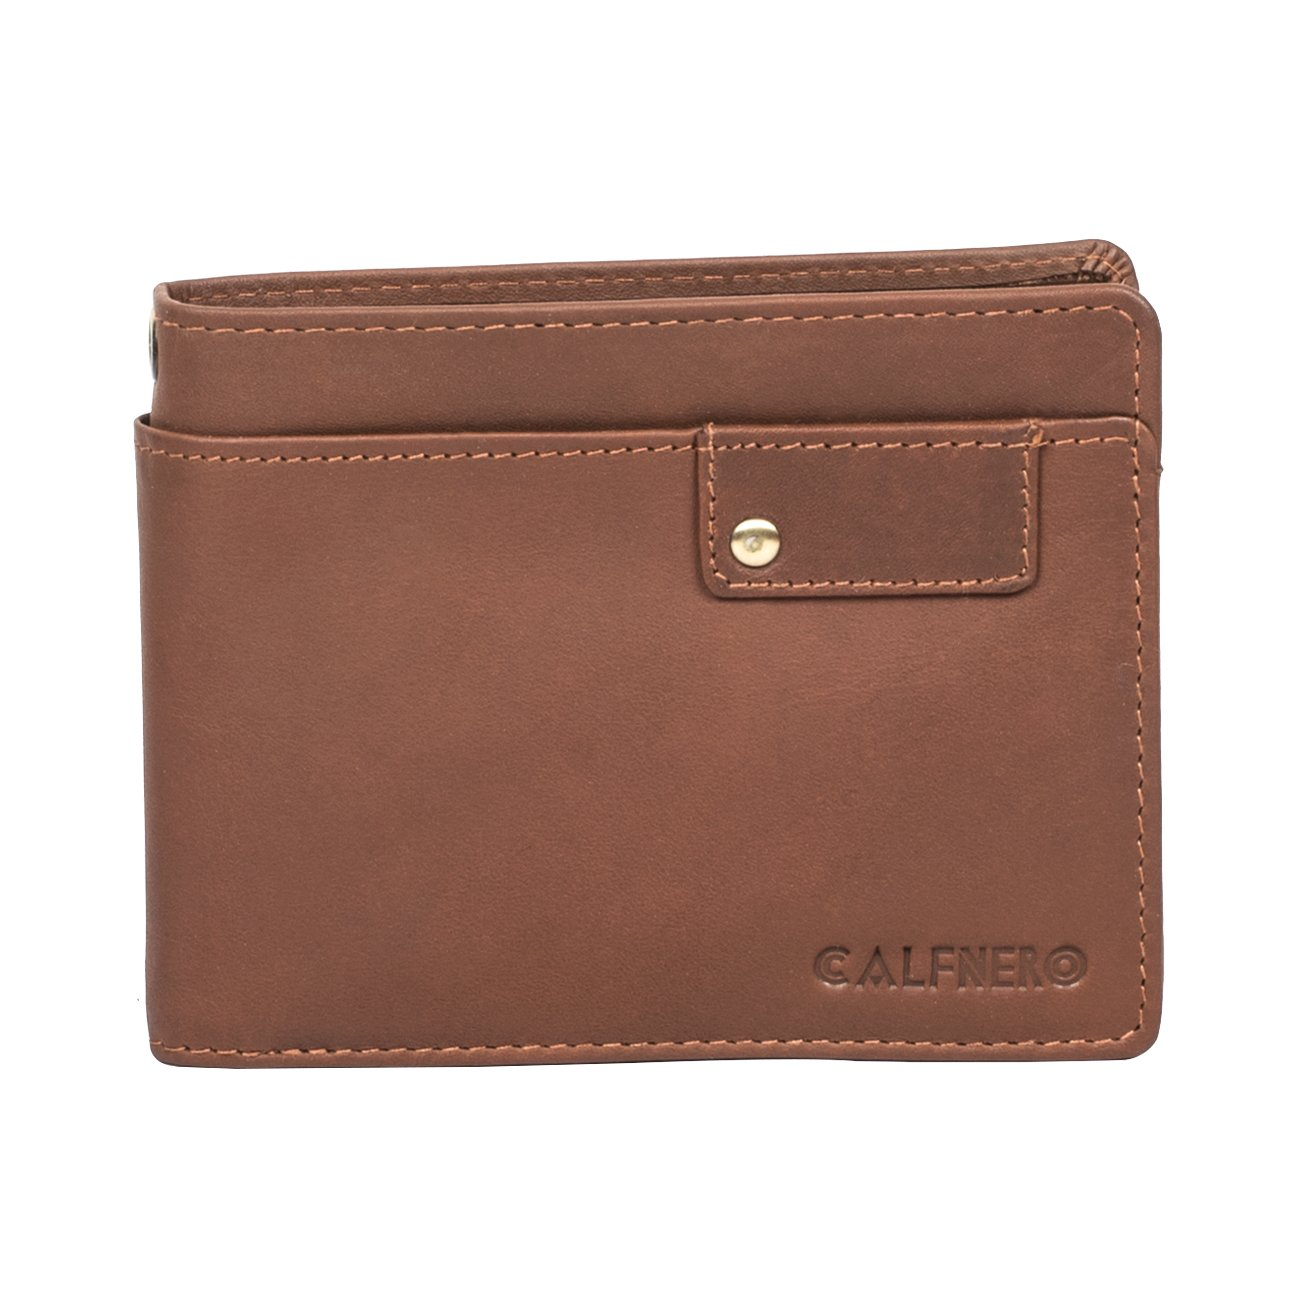 Calfnero Brown Men's Wallet (1882-A-Brown)